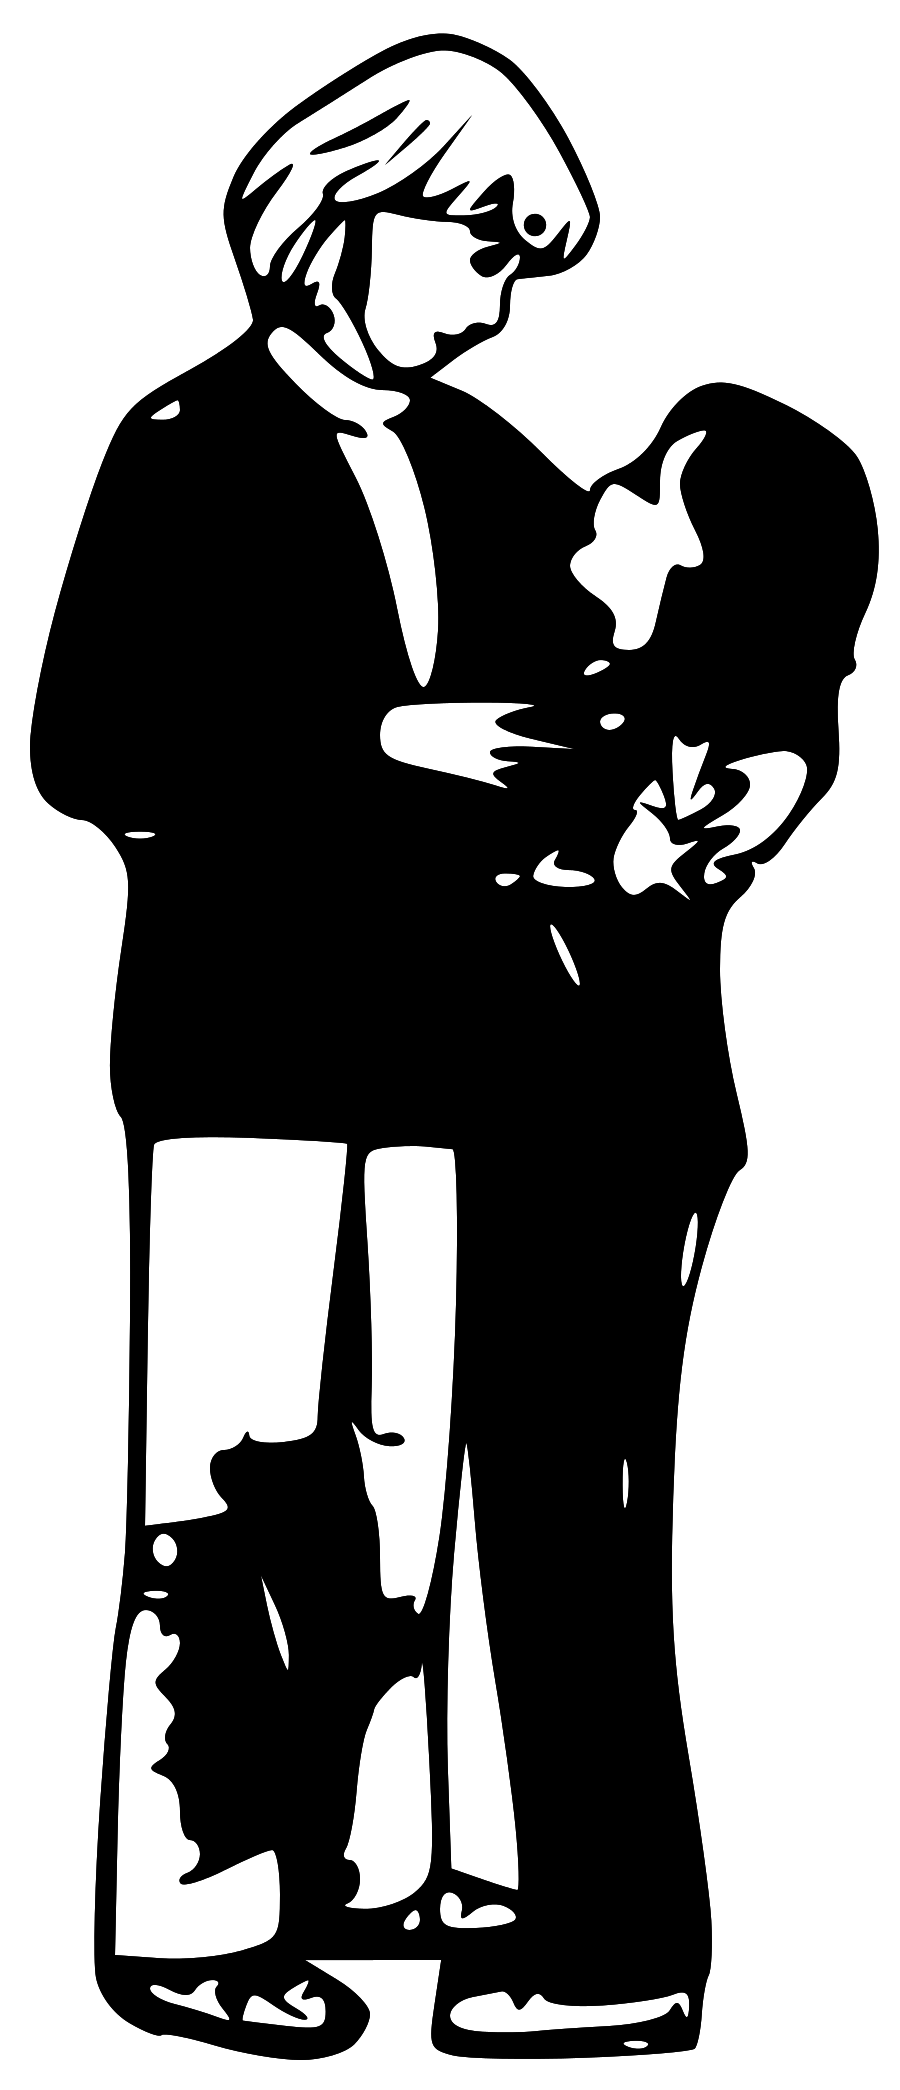 Mother And Daughter Hugging Clipart - Hug Black And White, Transparent background PNG HD thumbnail